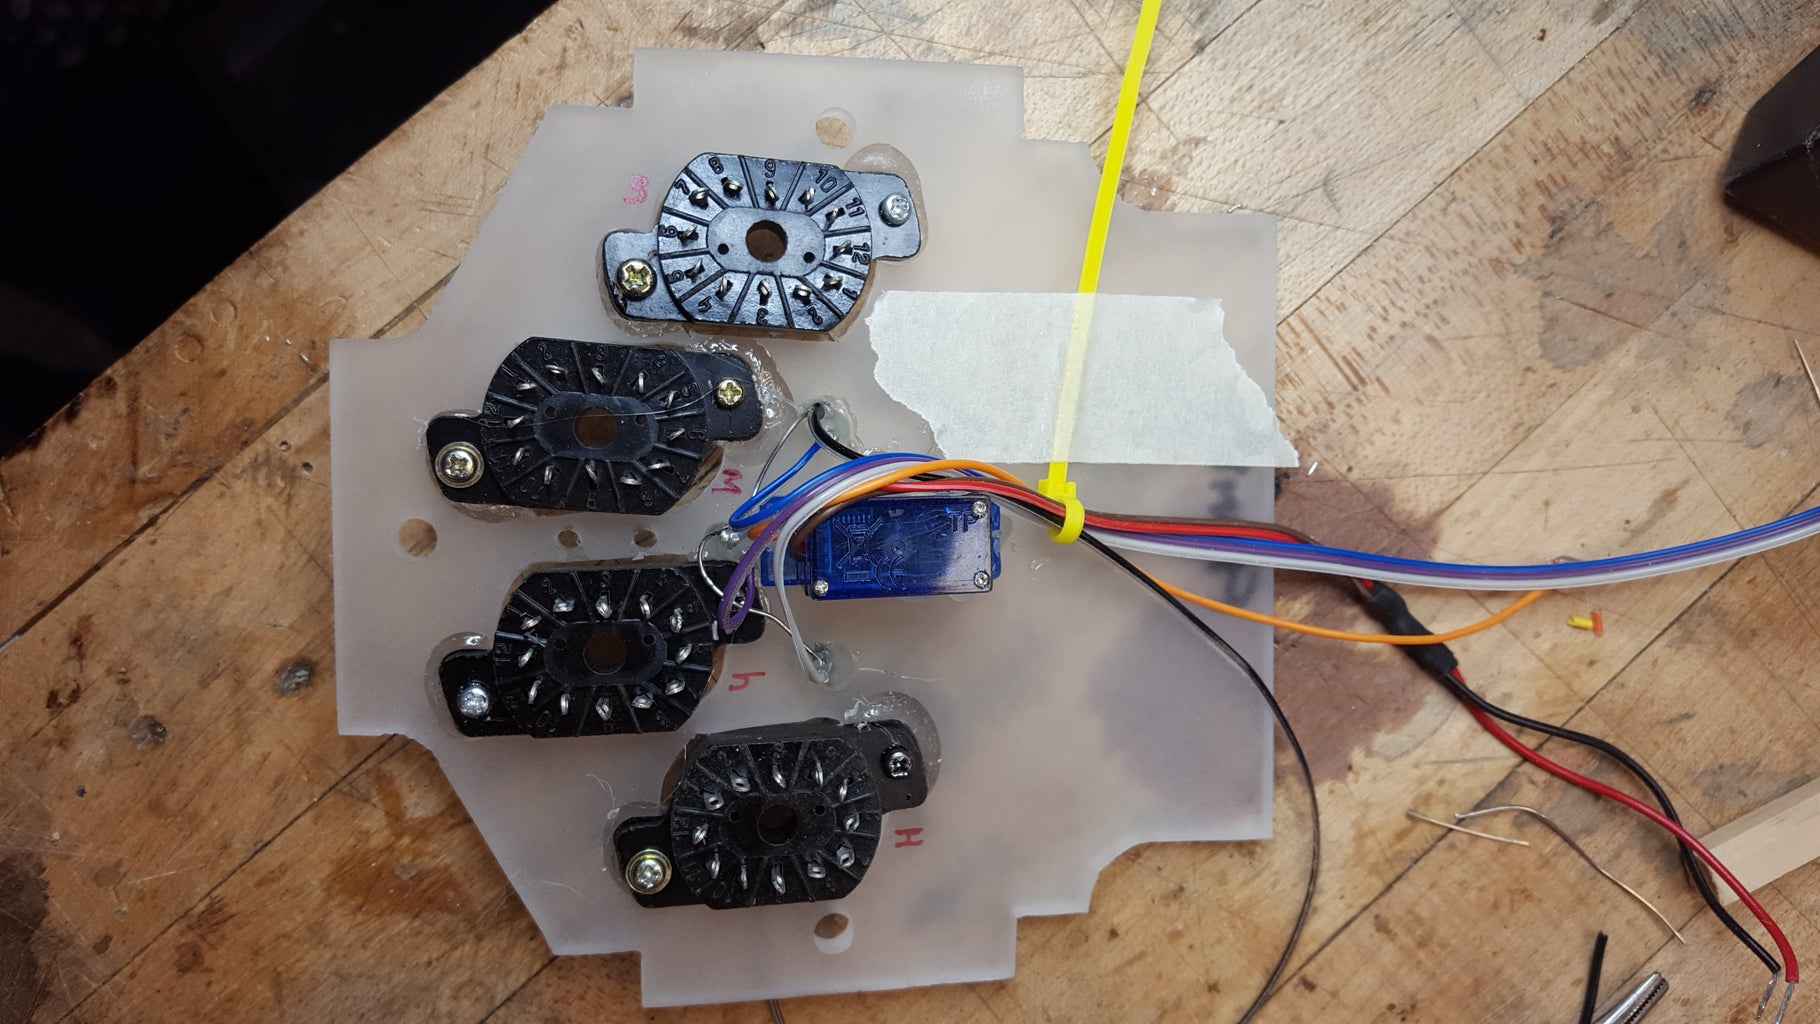 Soldering the Circuits...